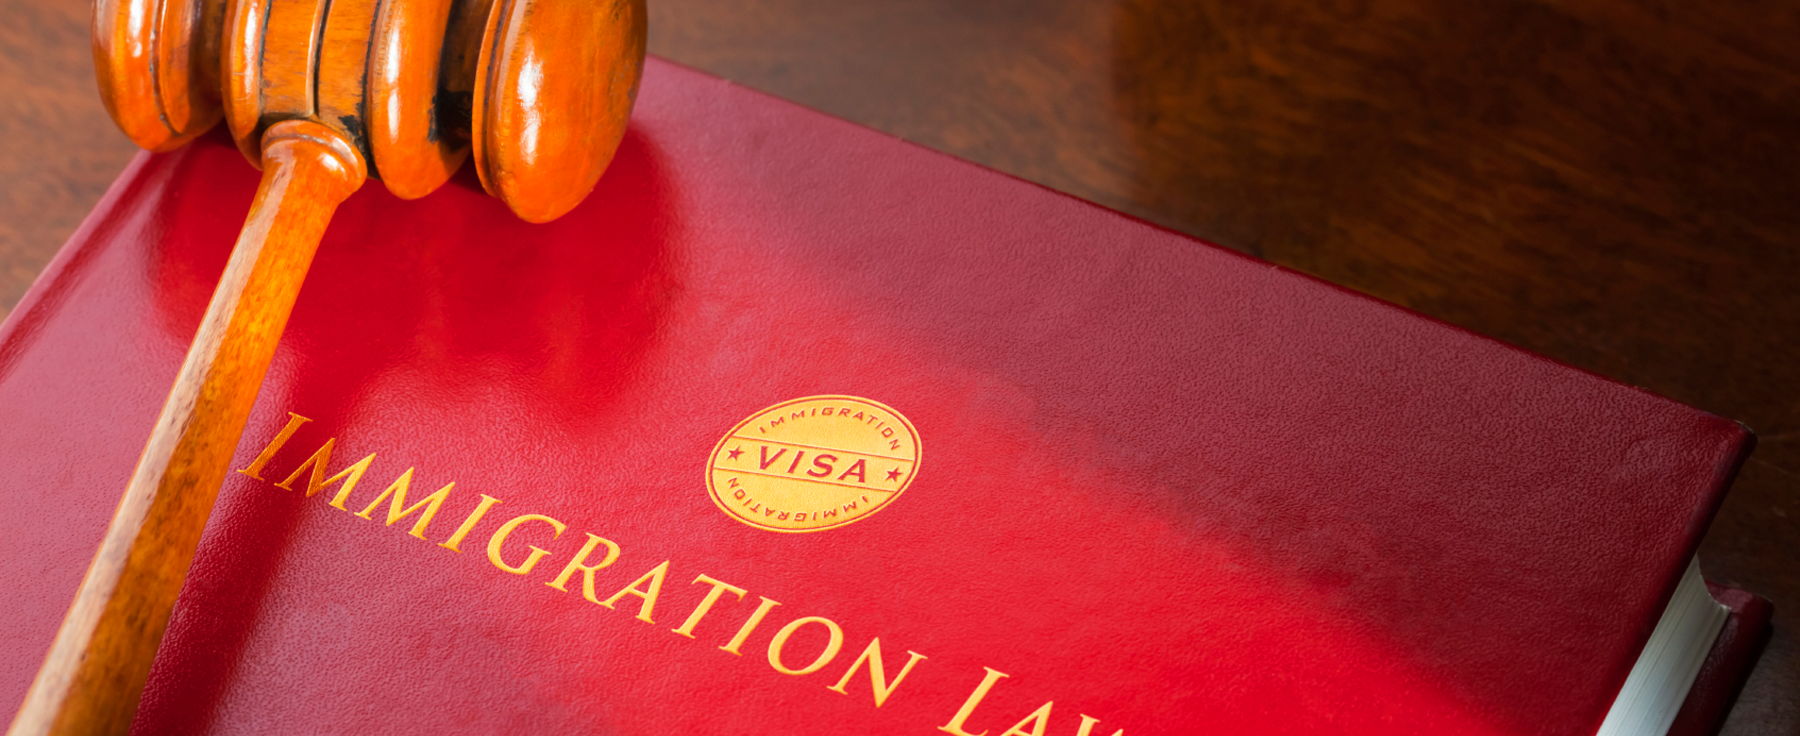 immigration law Immigration advice for us citizenship and naturalization, green cards, work/student/tourist visas and more.